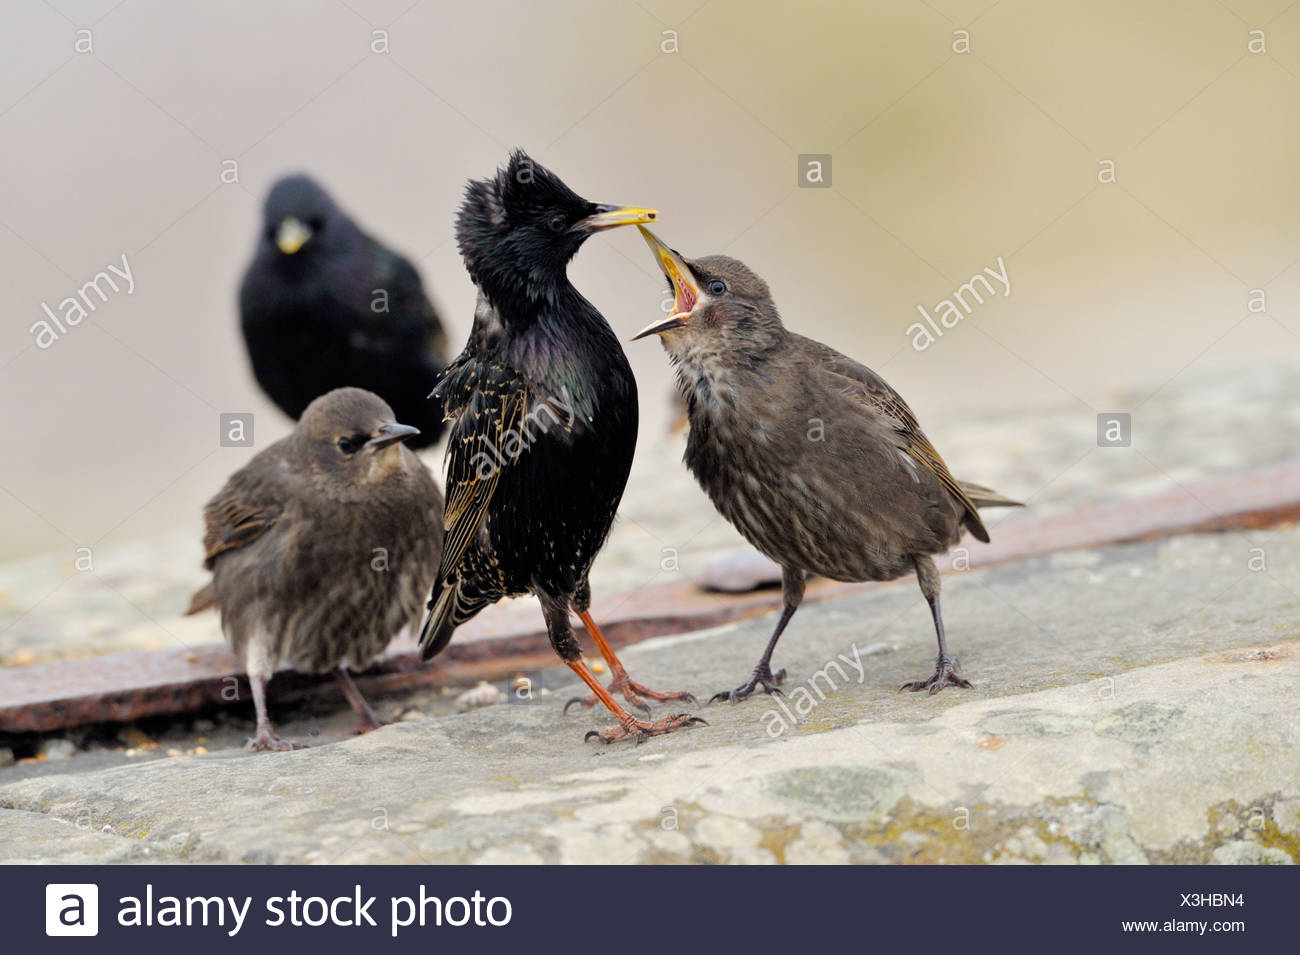 Starling - Juveniles being fed by parent Sturnus vulgaris - Stock Image